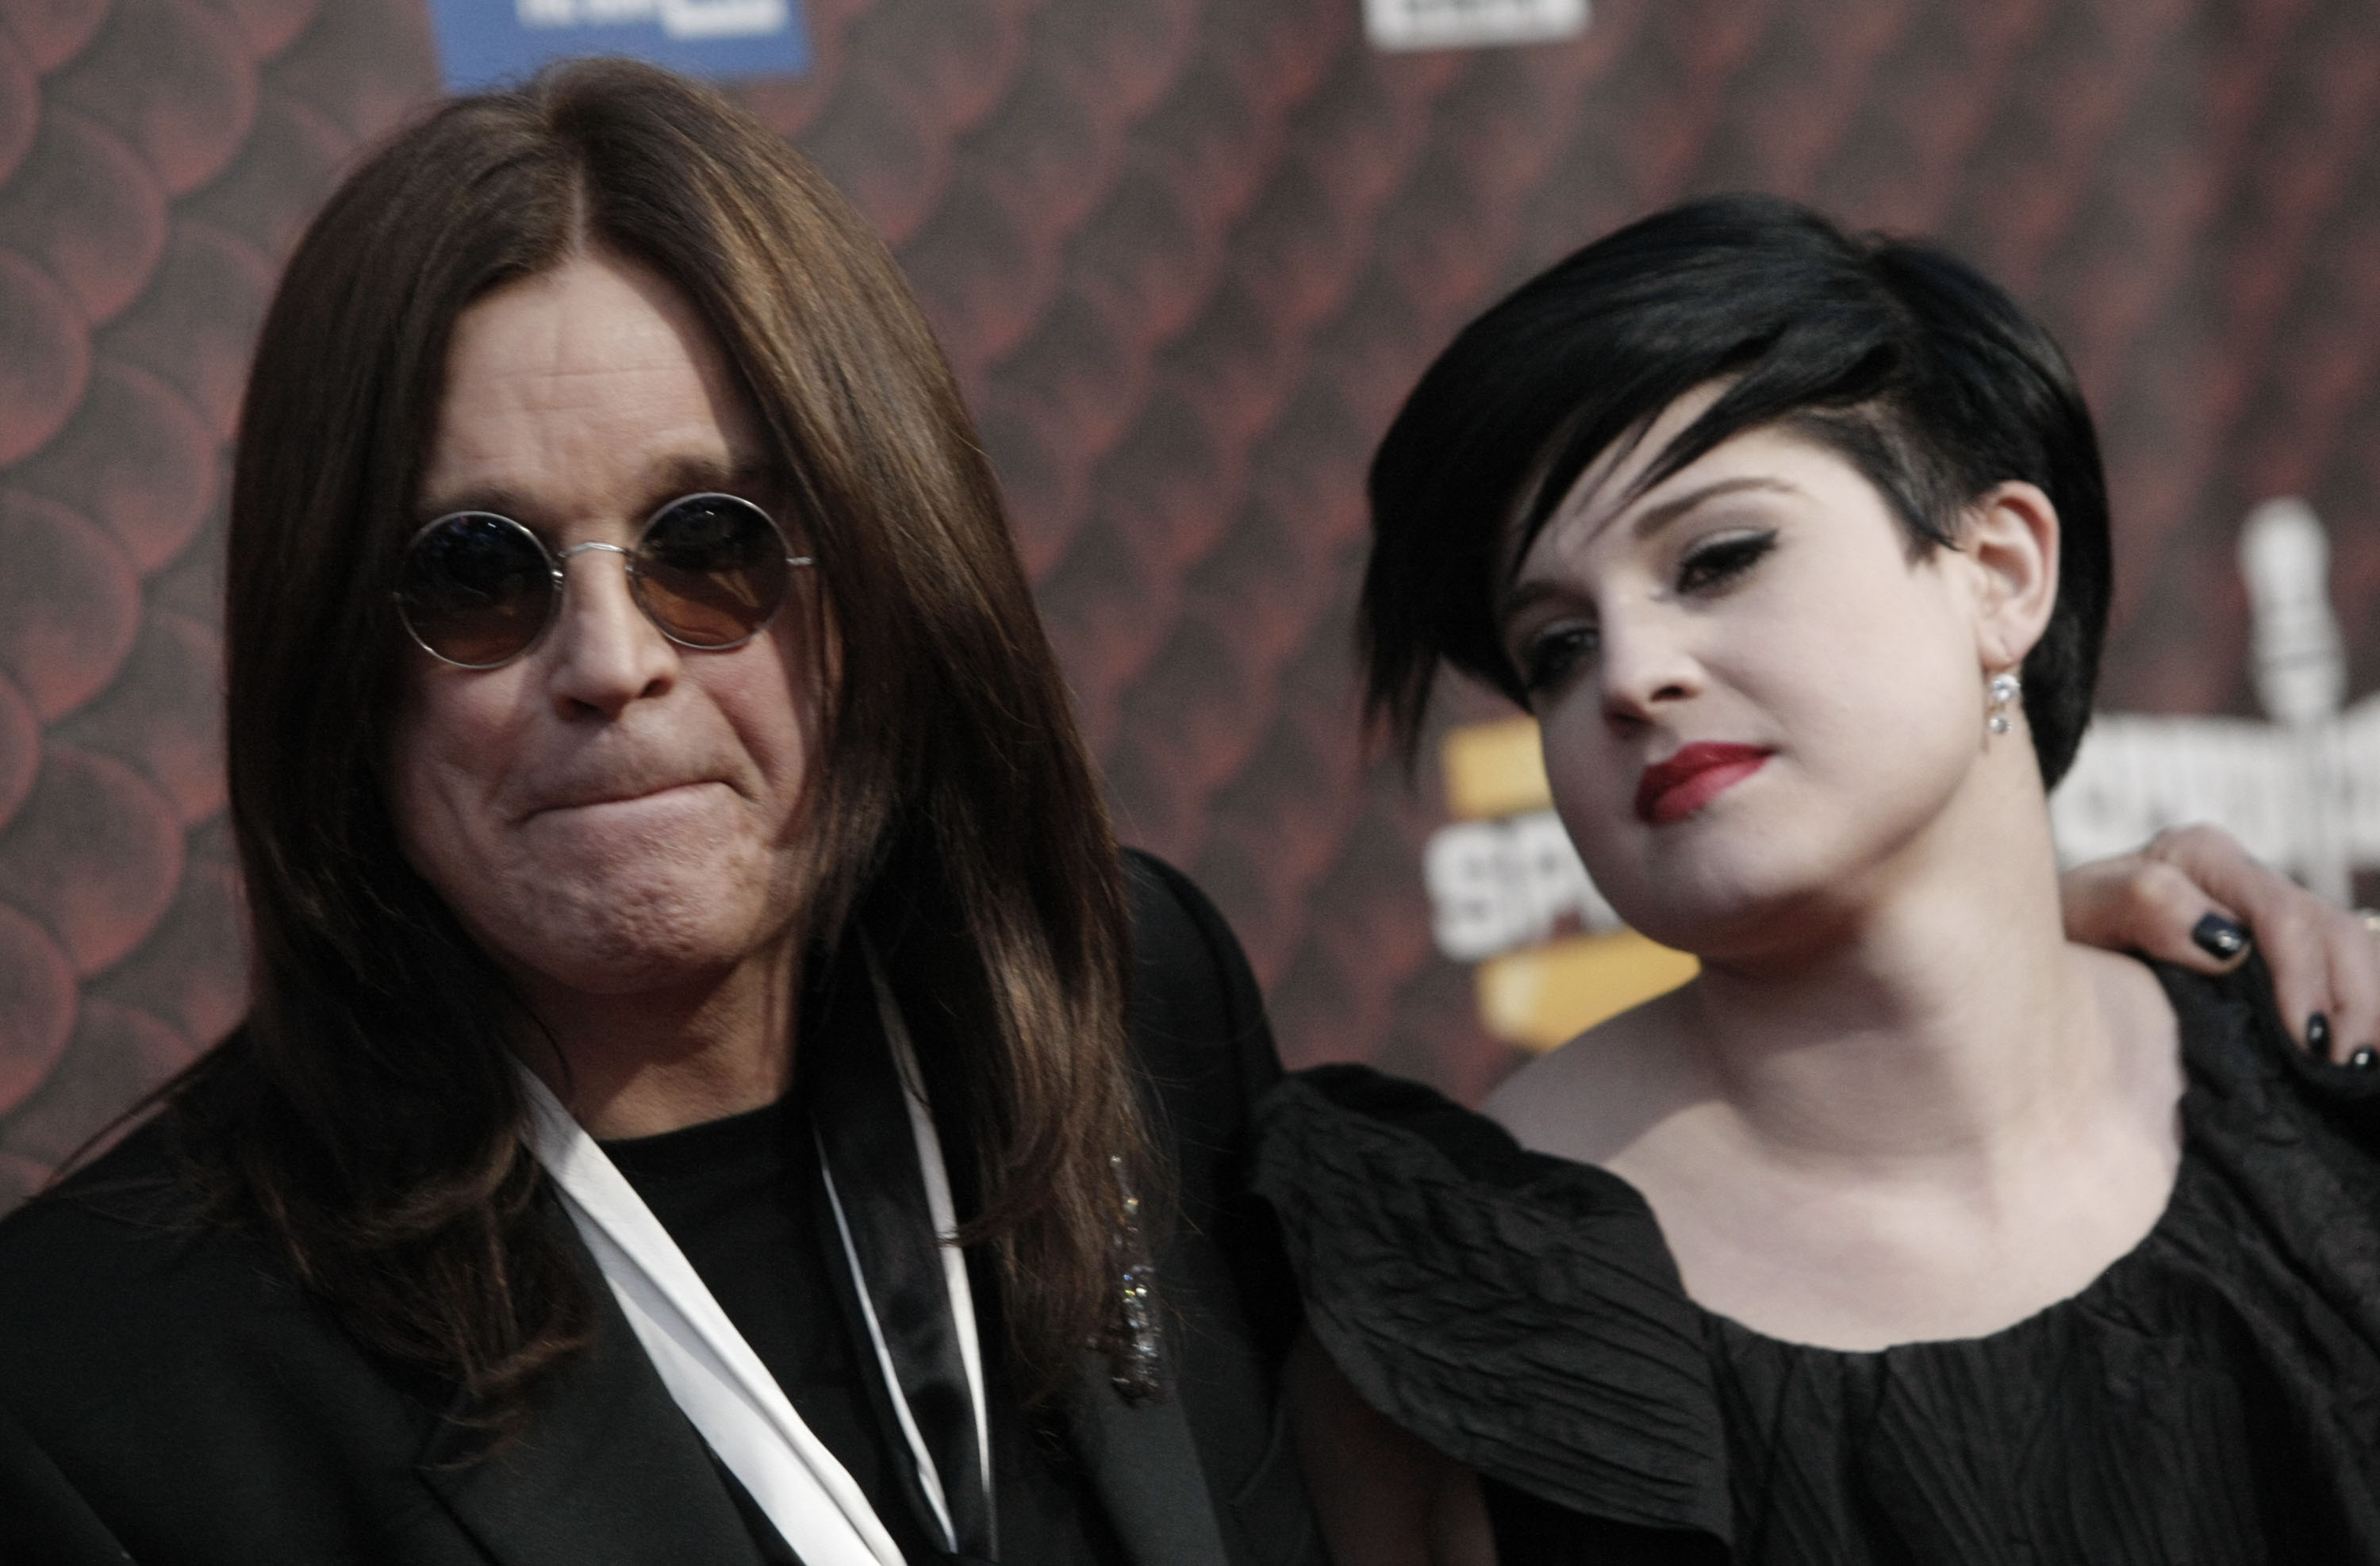 Ozzy Osbourne, left, and daughter Kelly Osbourne arrive at the Scream Awards on Saturday Oct. 18, 2008 in Los Angeles. (AP Photo/Dan Steinberg)